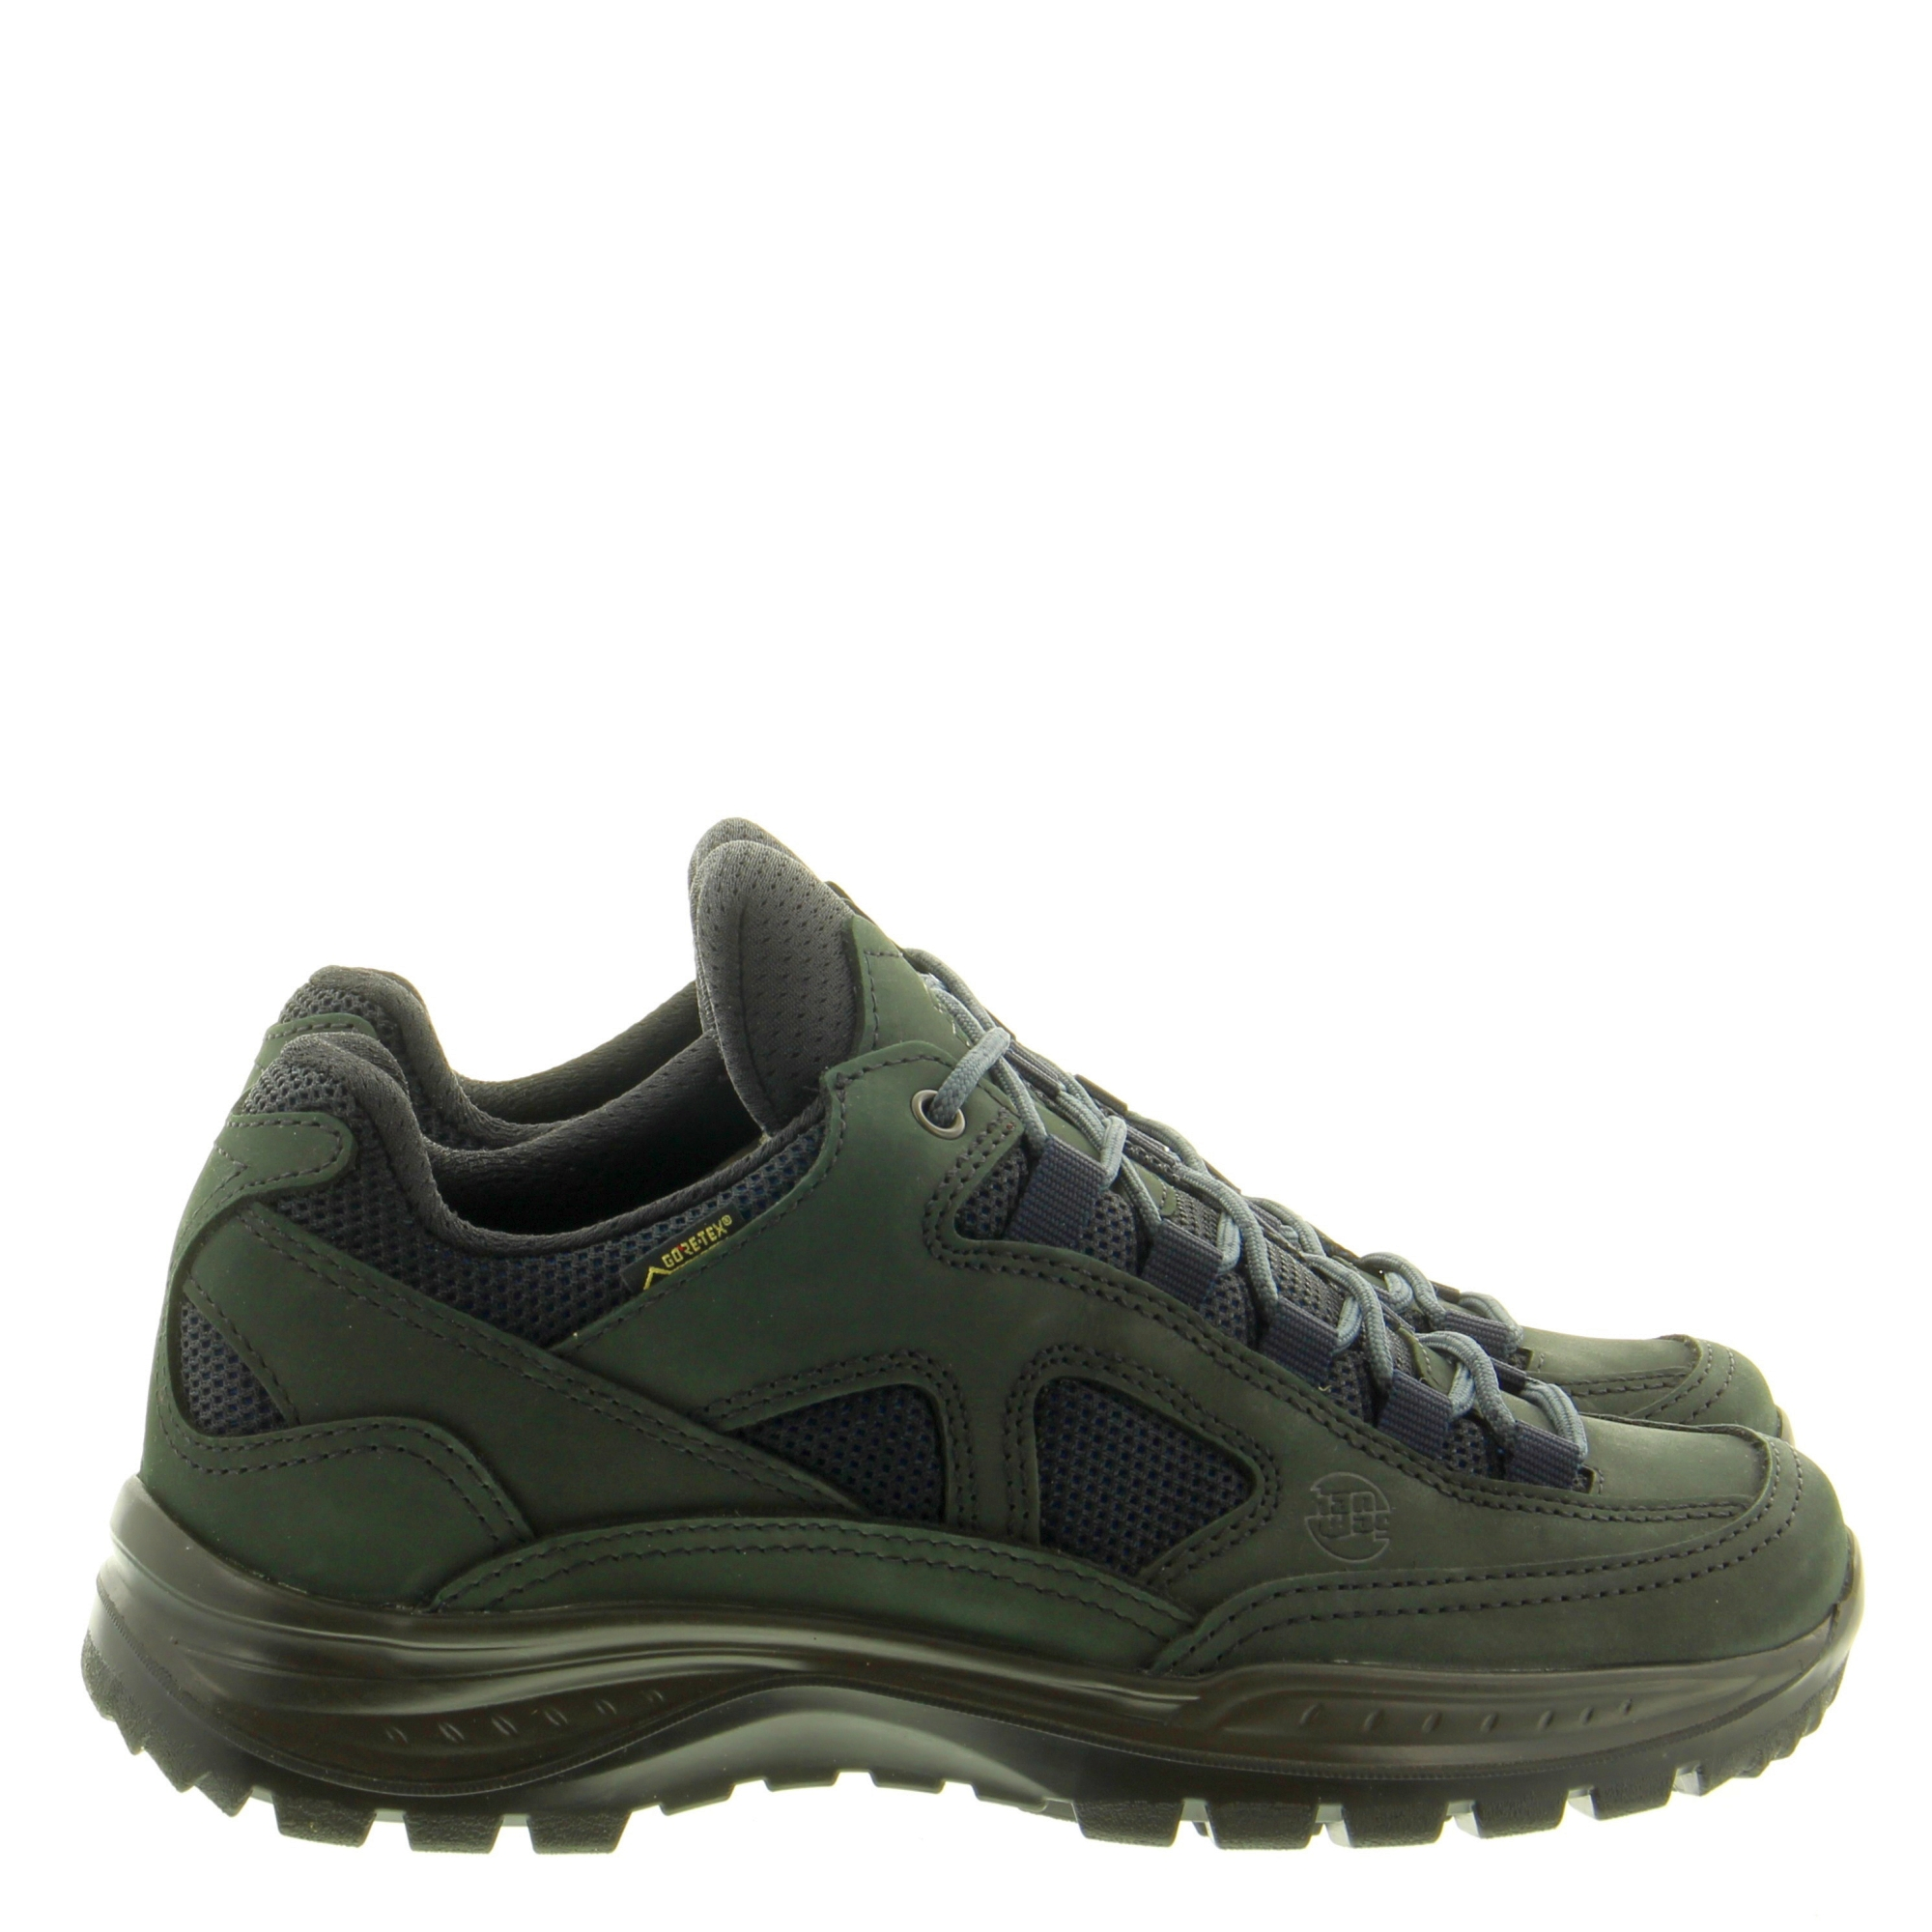 Hanwag 5512 Gritstone Lady GTX 11 Antracite